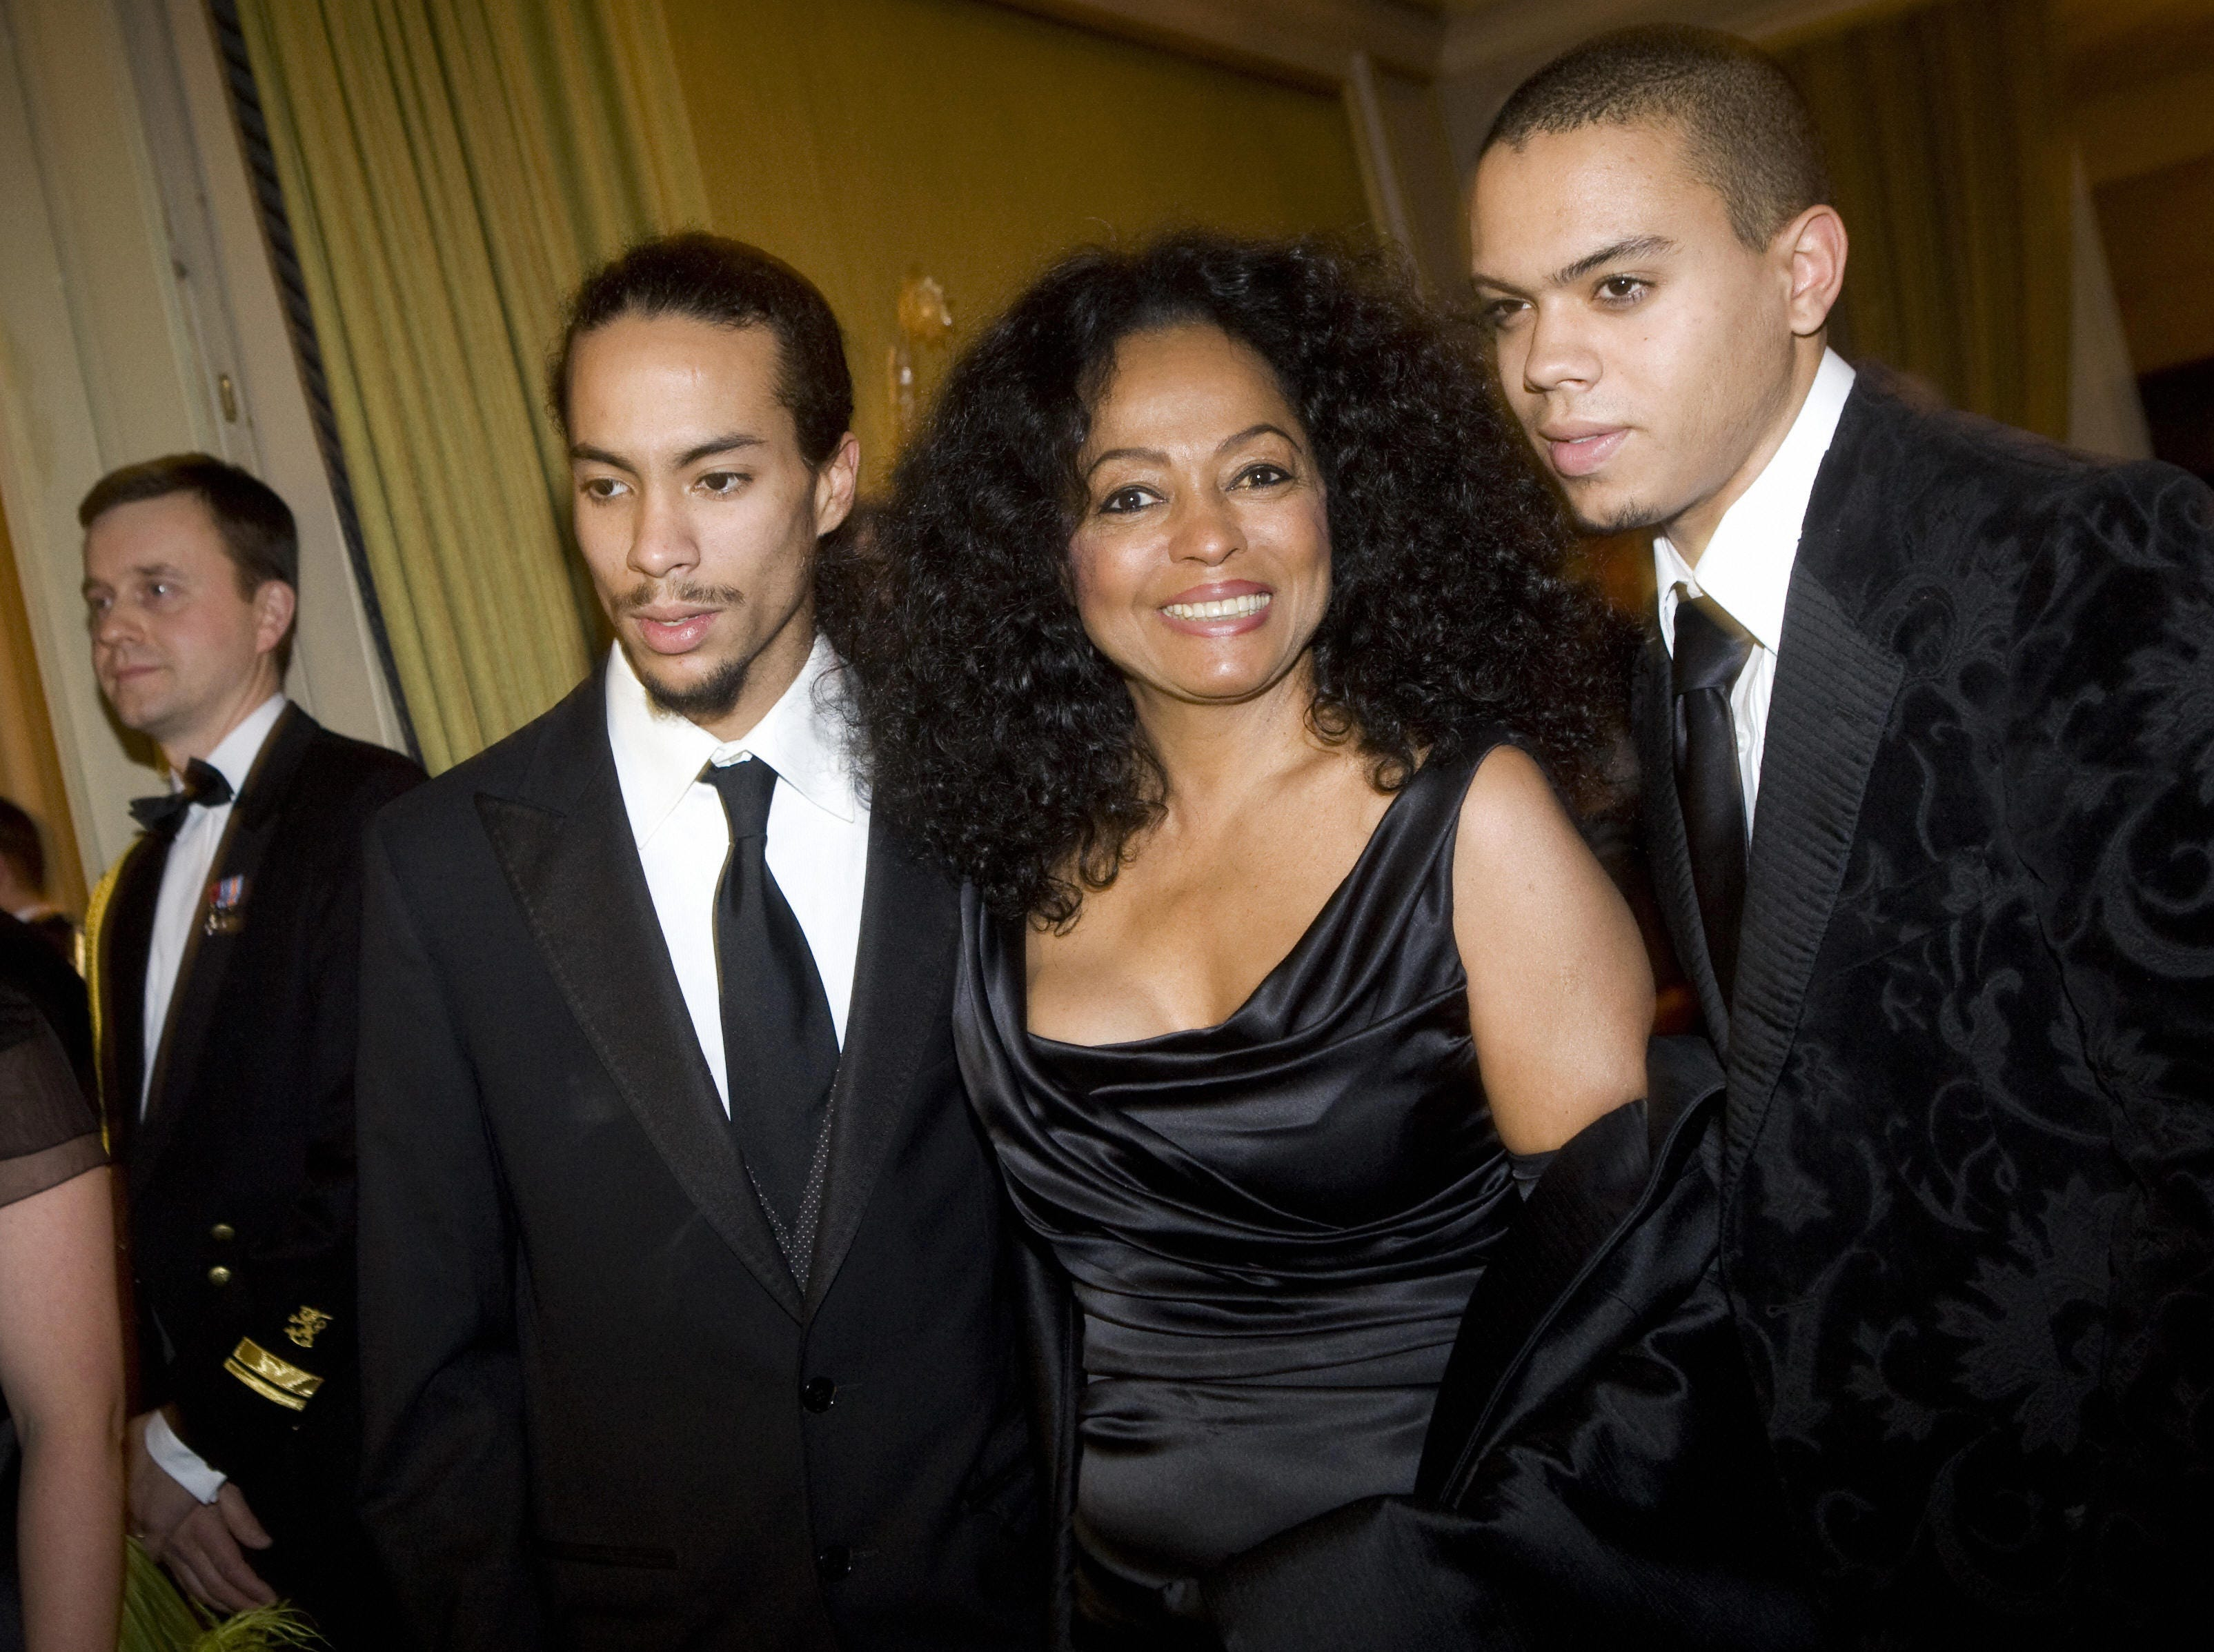 Diana Ross and her sons Ross Arne Naess and Evan Ross arrive for the Norwegian Nobel Committee's Banquet in Oslo on Dec. 10, 2008. Both are the sons of Arne Naess Jr.